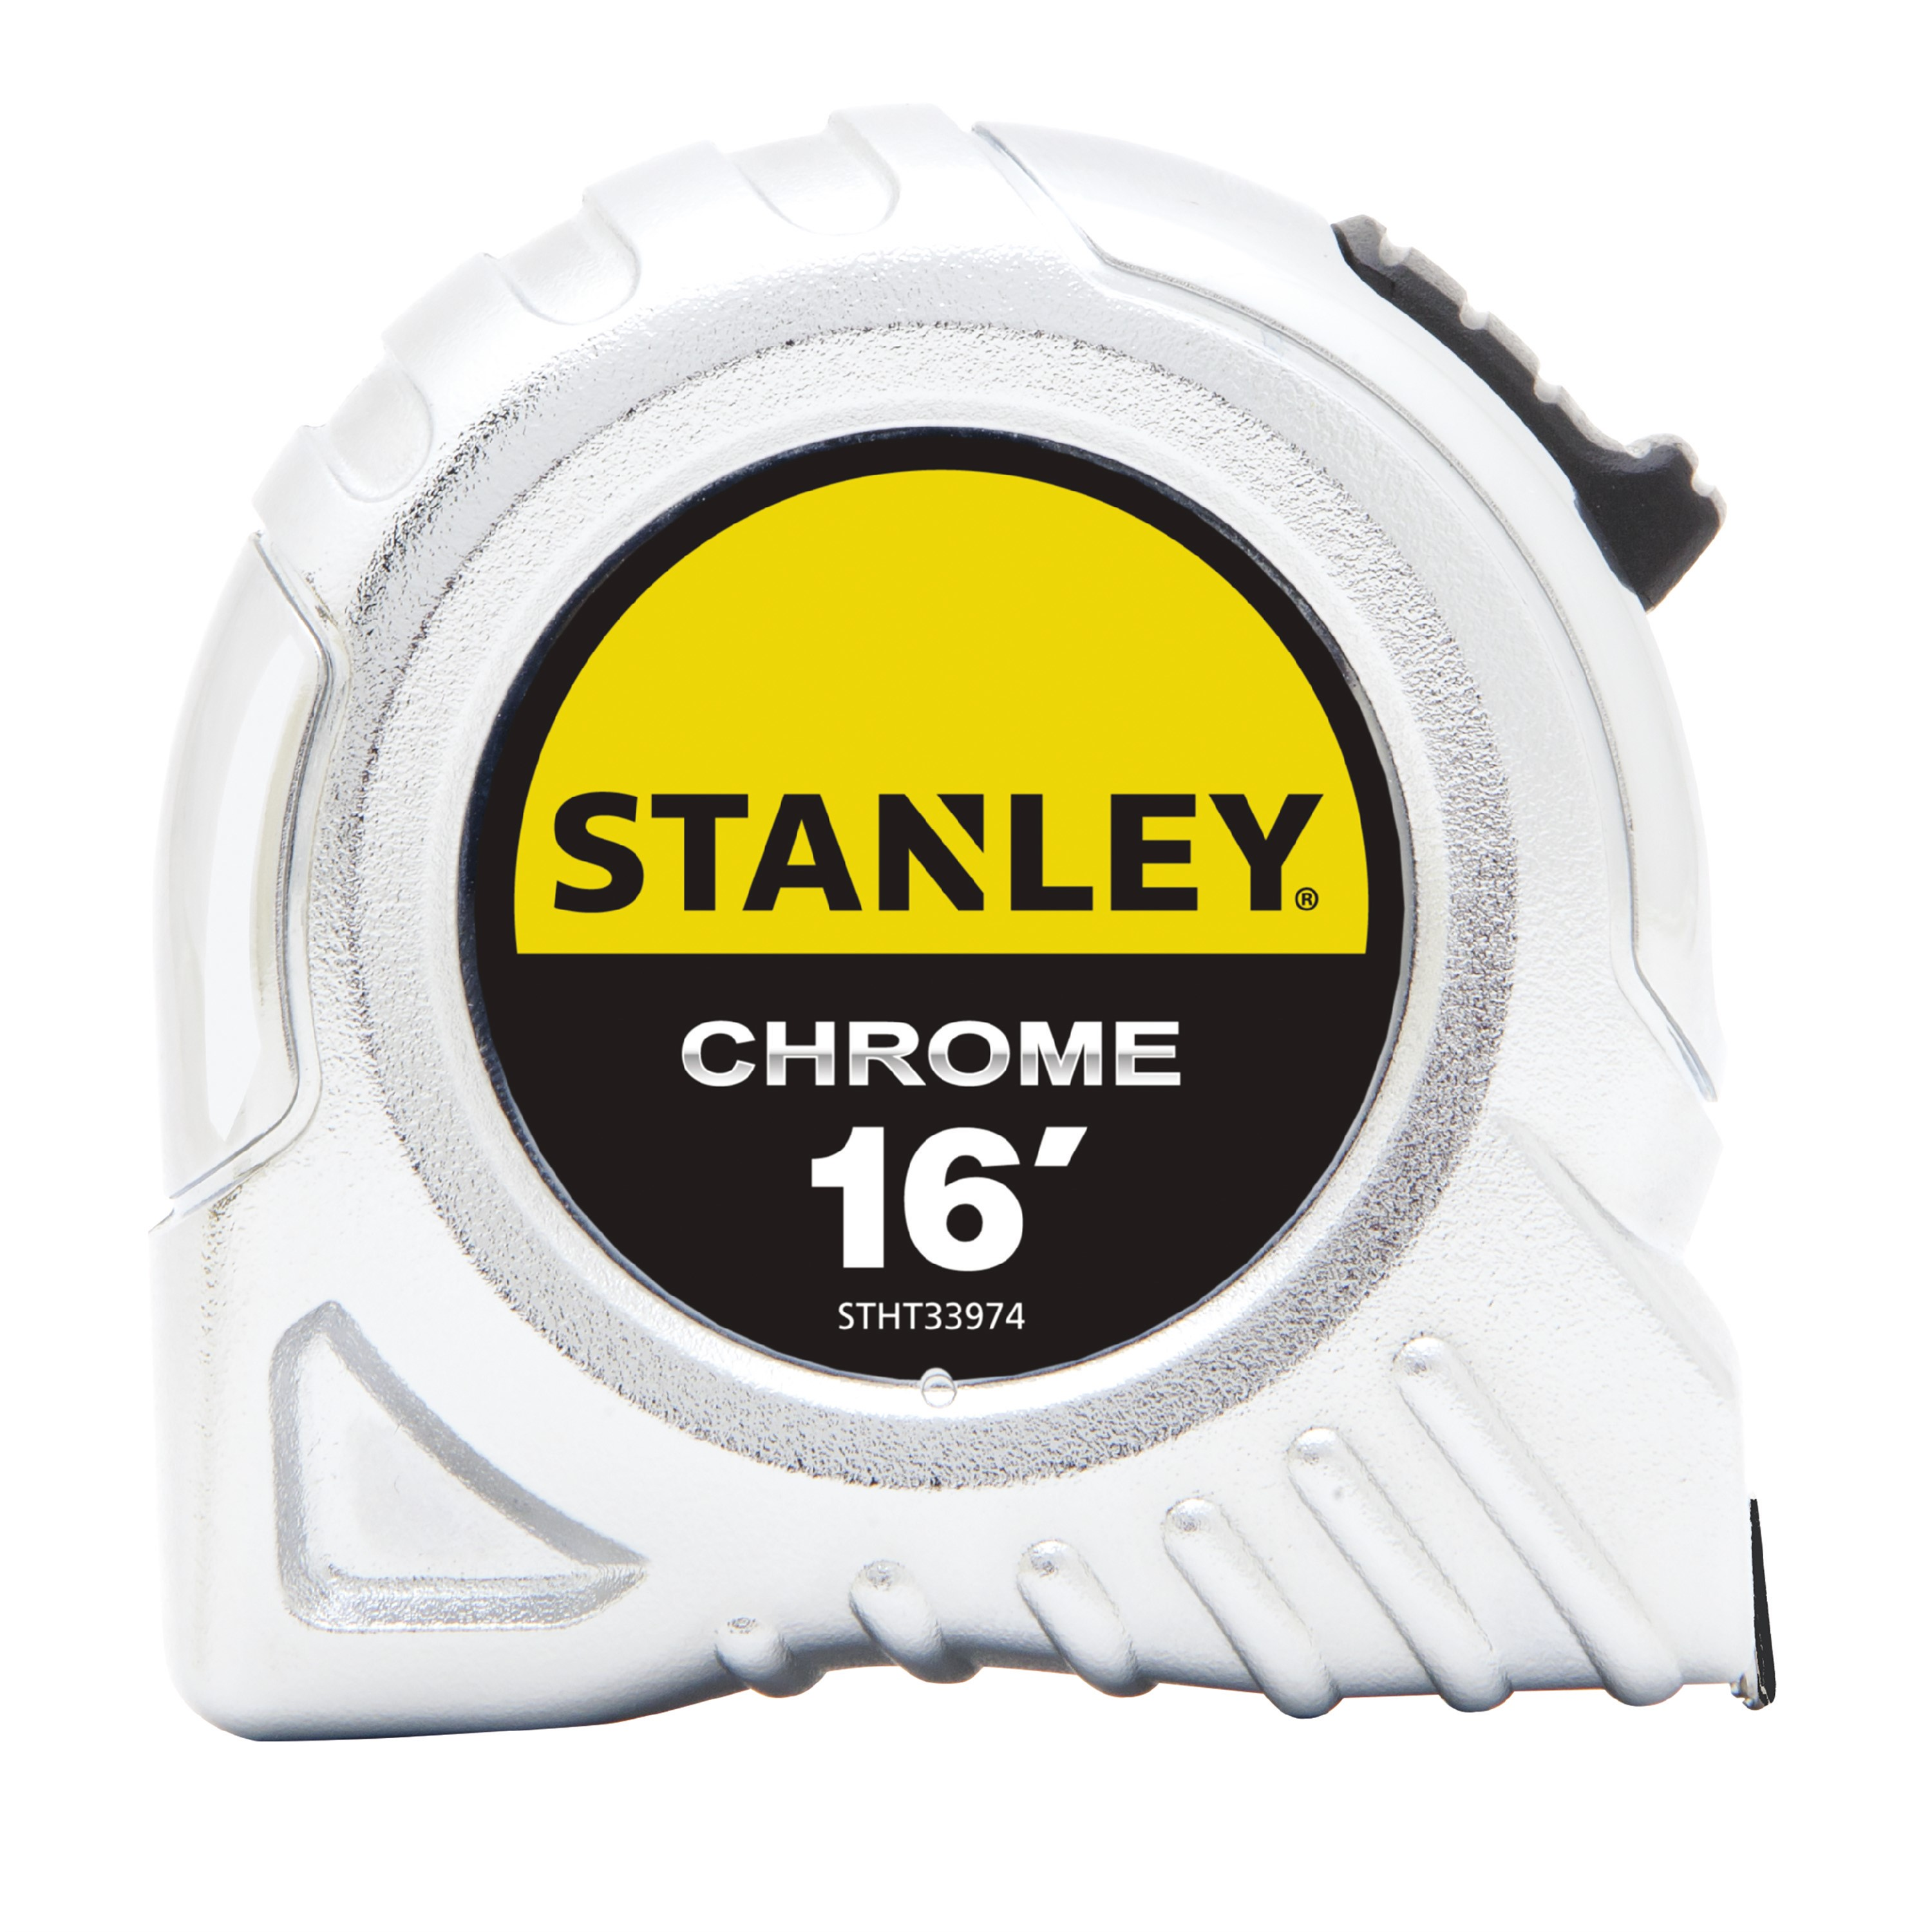 STANLEY 16ft Chrome Tape Measure | STHT33974